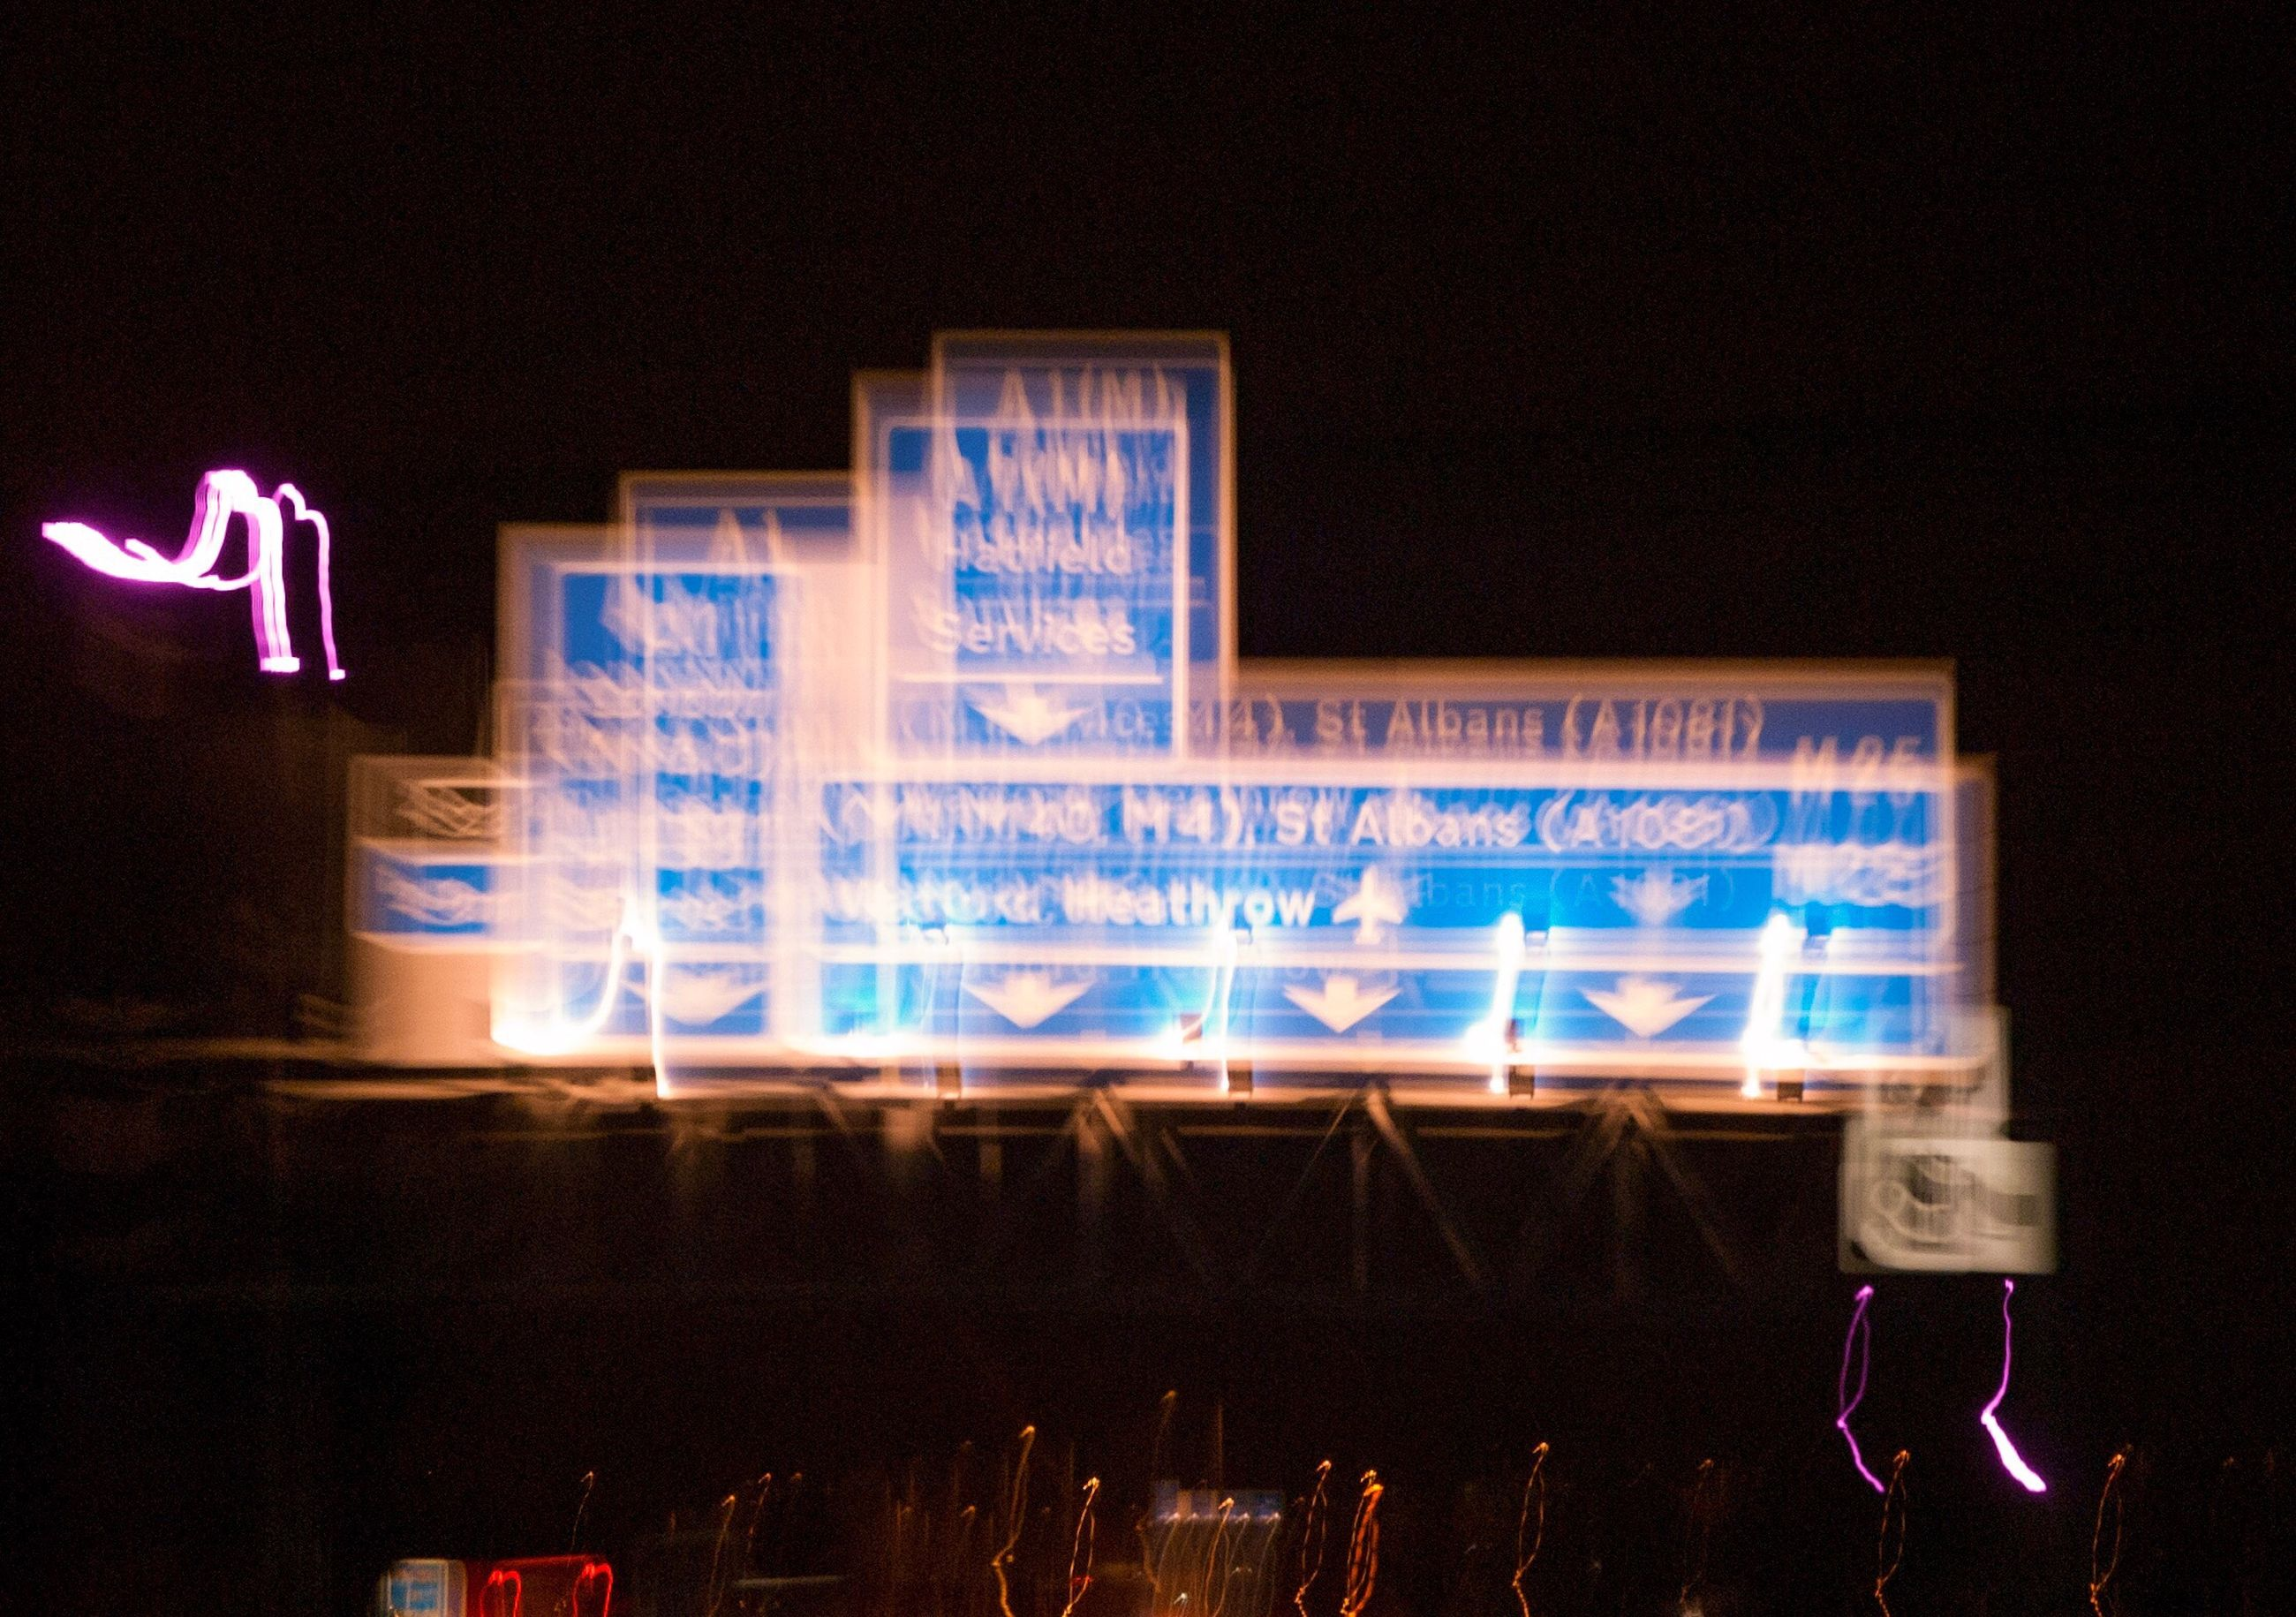 communication, illuminated, text, night, western script, neon, information, information sign, advertisement, blue, sky, neon light, outdoors, commercial sign, symbol, signboard, modern